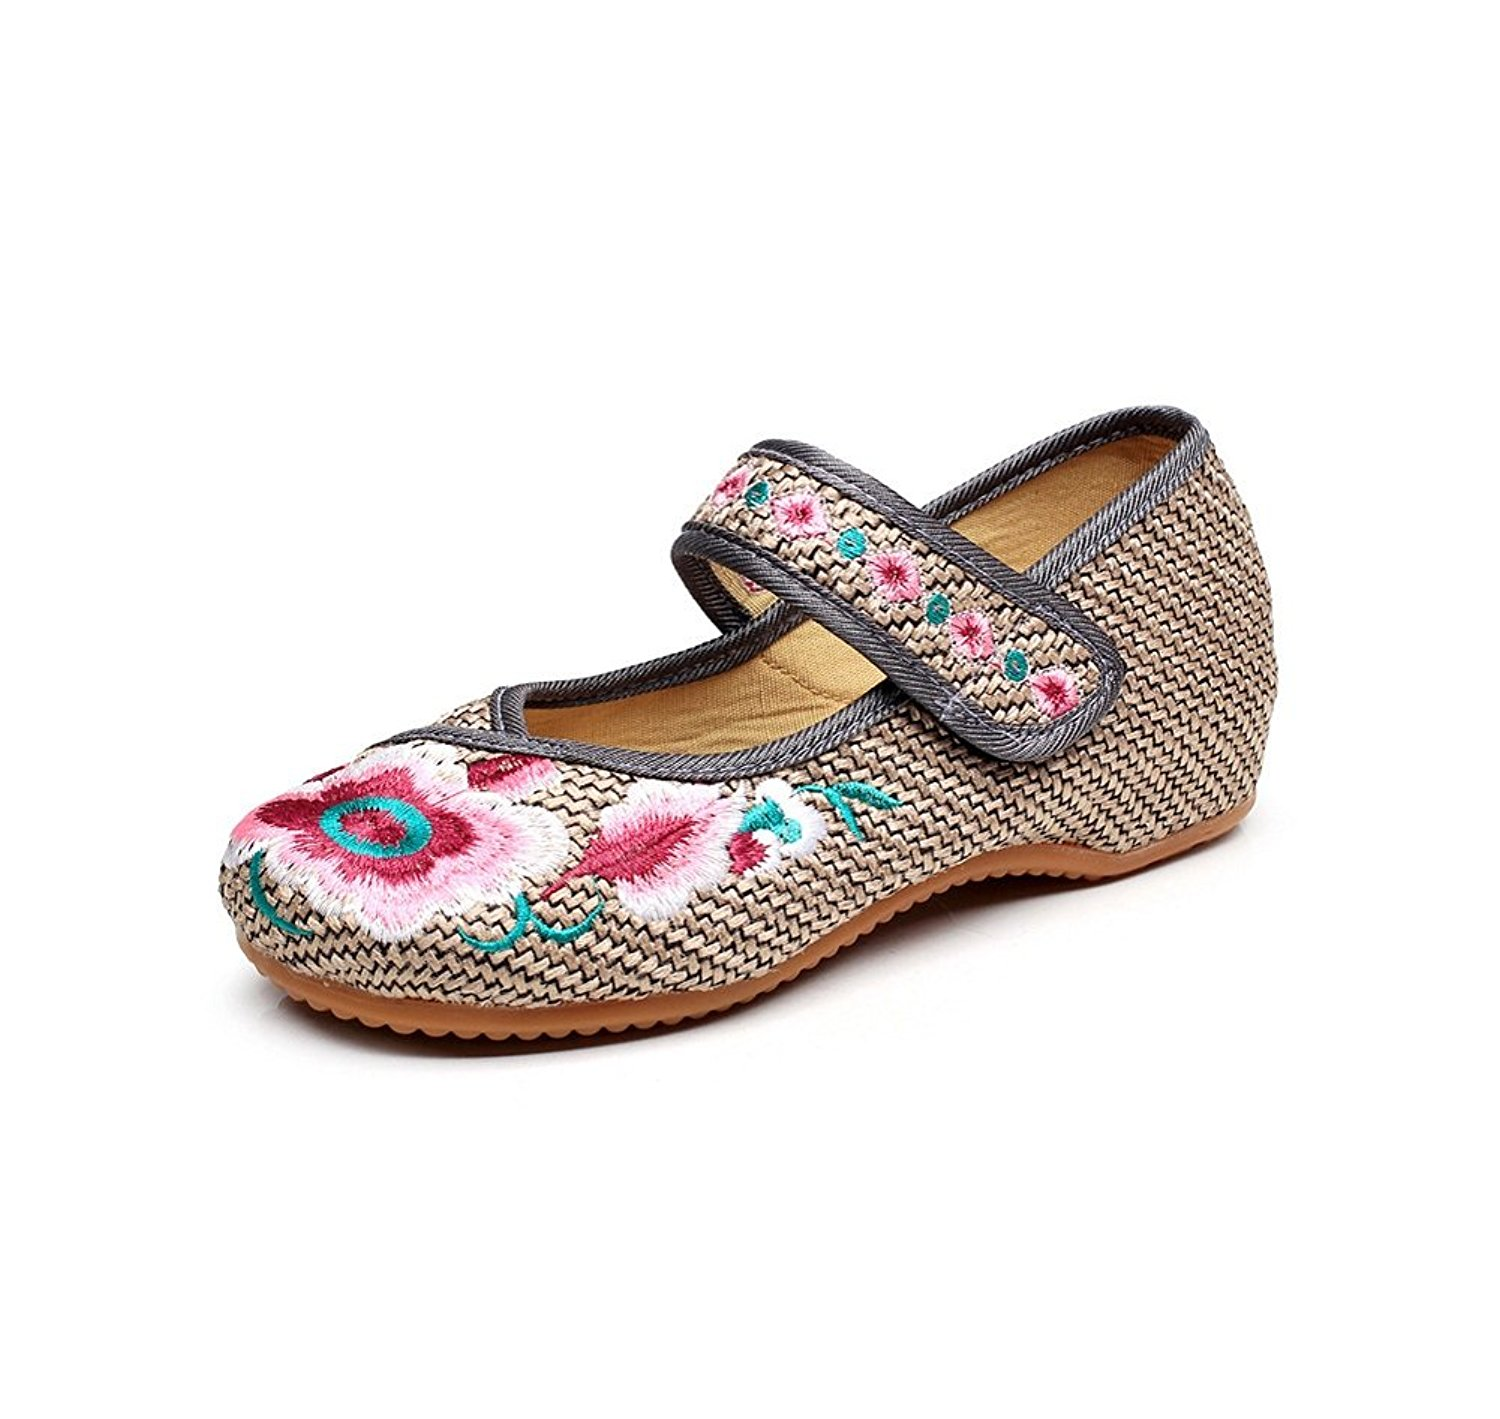 f5d3801ed94 Get Quotations · Lazutom Vintage Chinese Style Women Embroidered Shoes Mary  Jane Flat Casual Ladies Mary Jane Qipao Dress